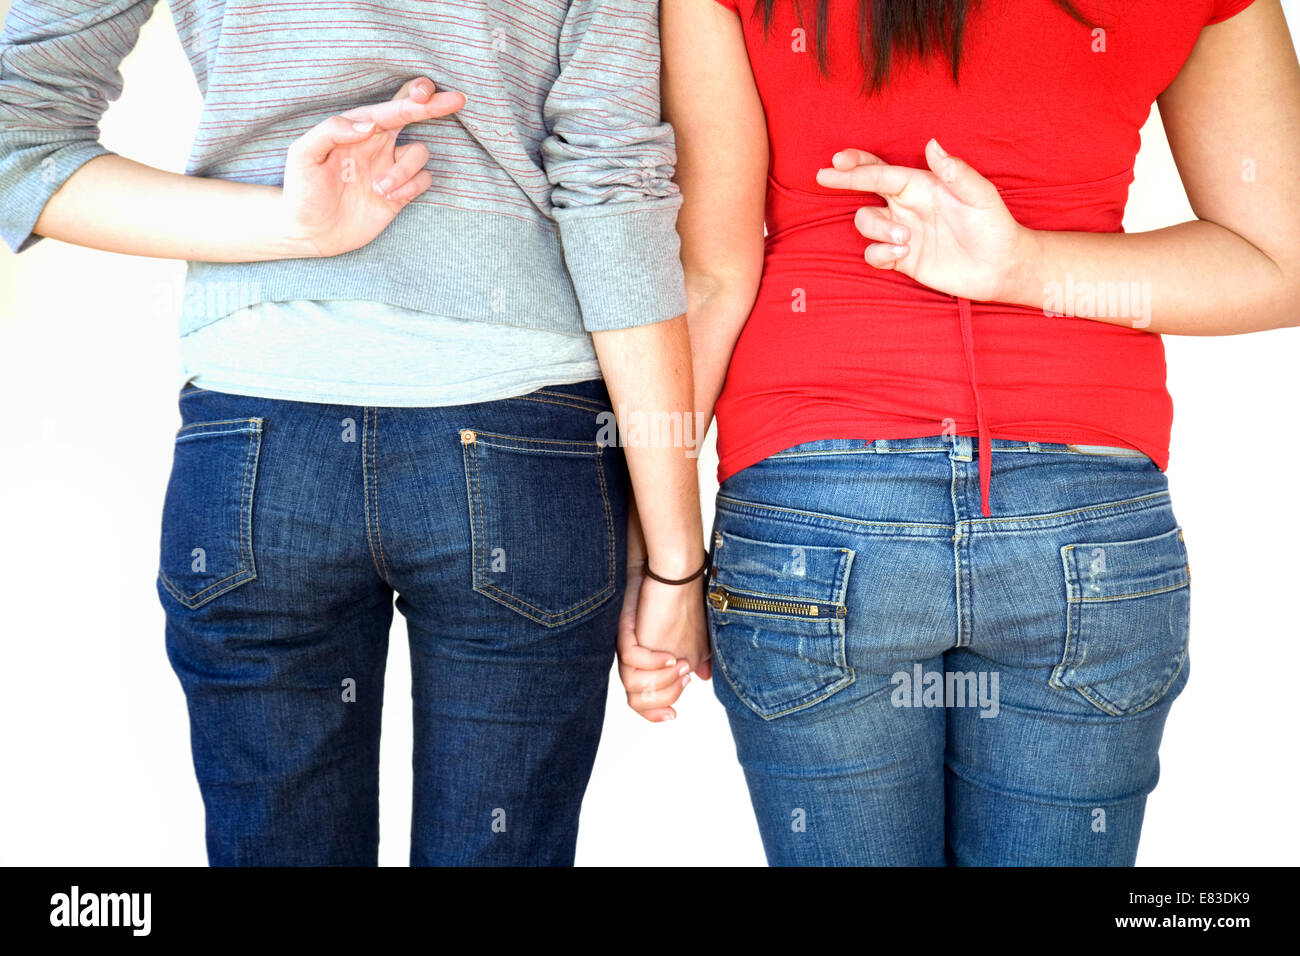 Two teenage girls standing holding hands with fingers crossed behind their backs; UK - Stock Image